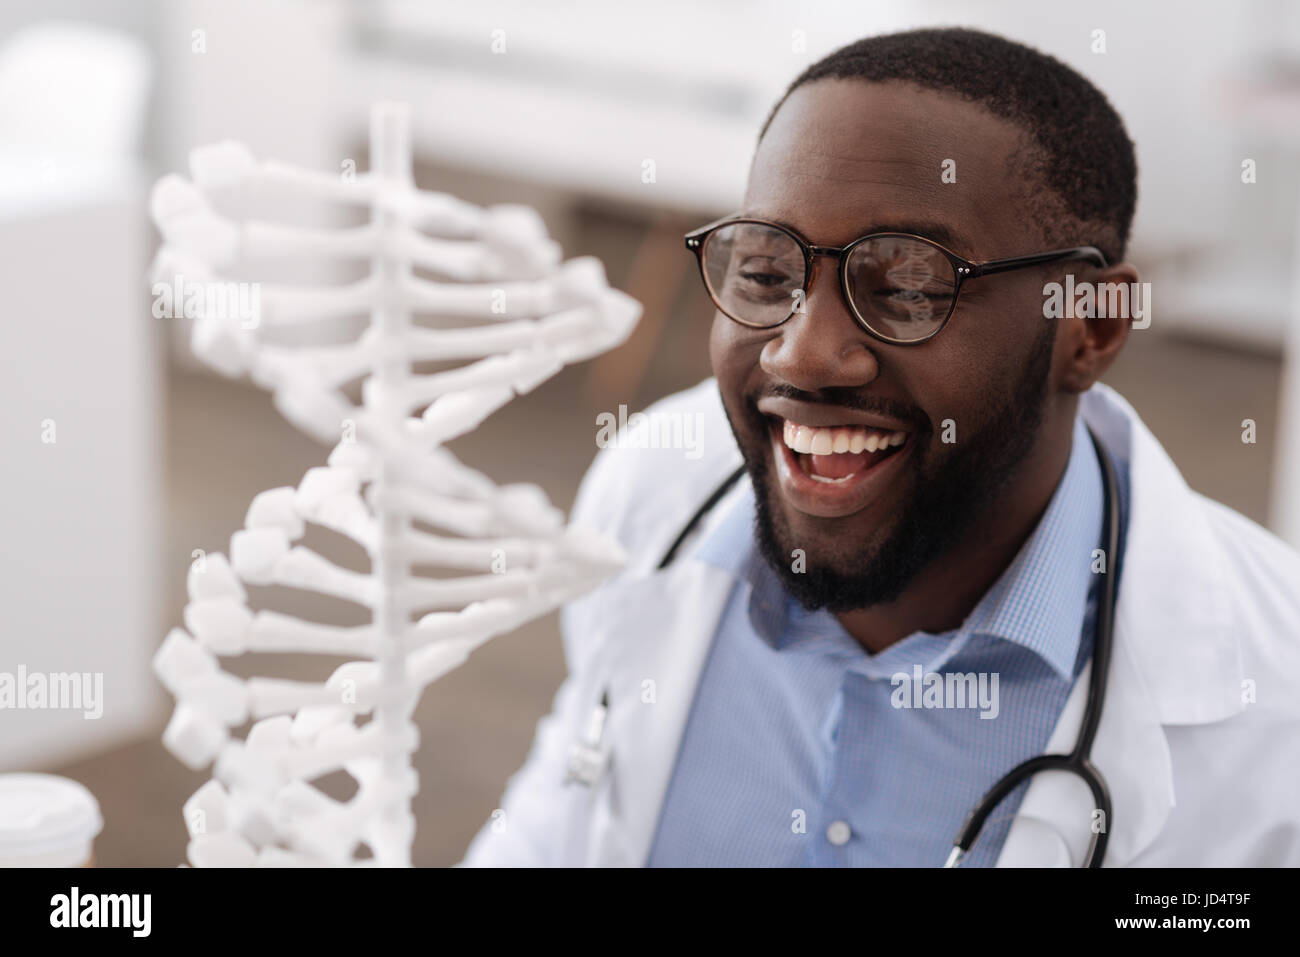 Smart modern scientist looking at the gene model - Stock Image